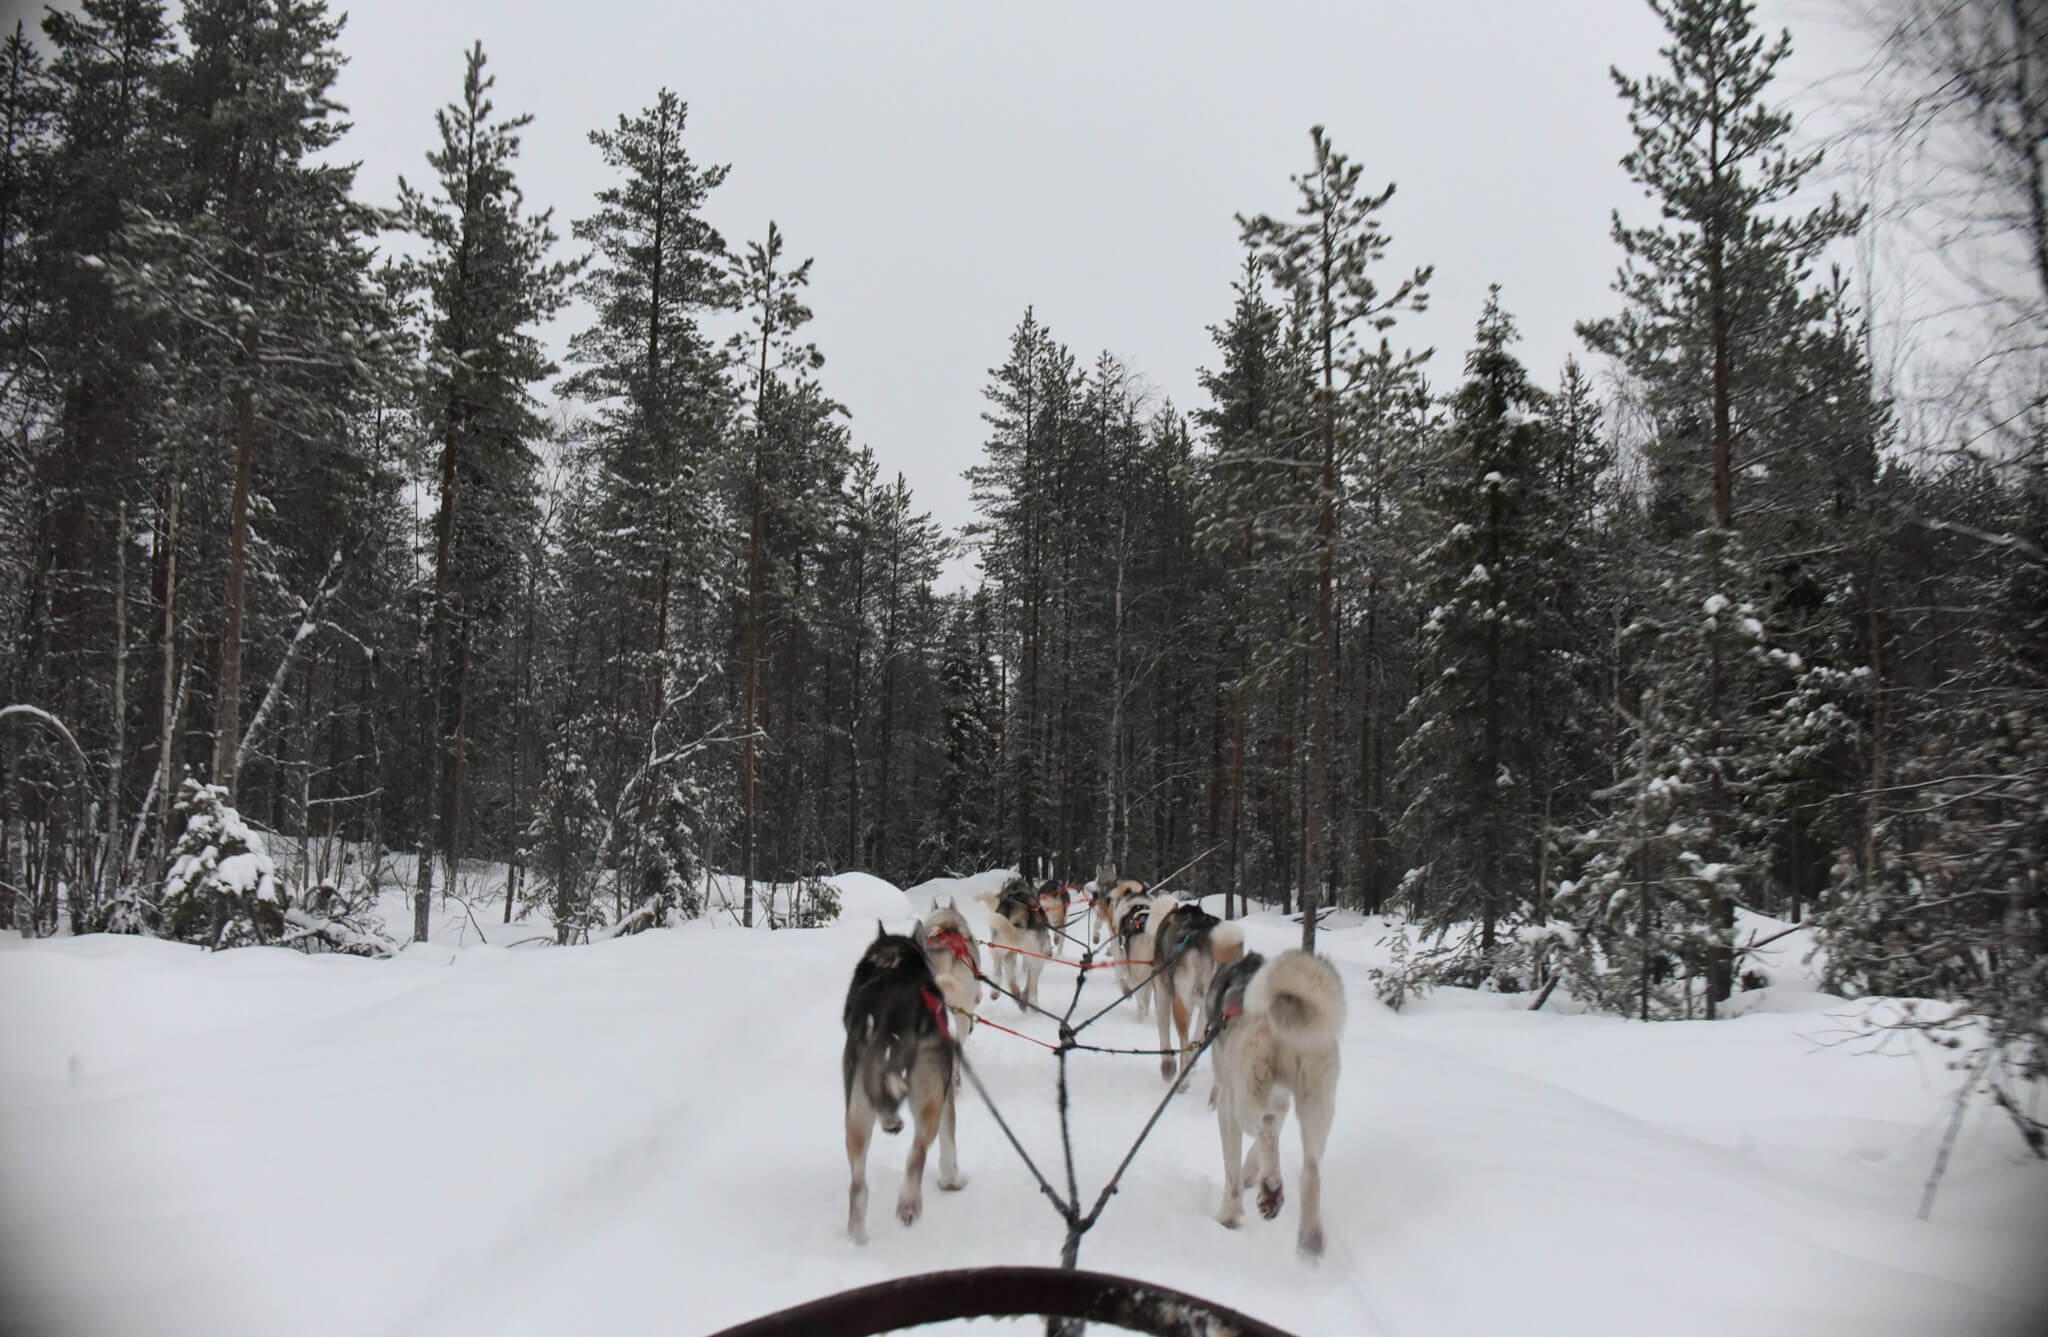 Lapland Excursion huskies